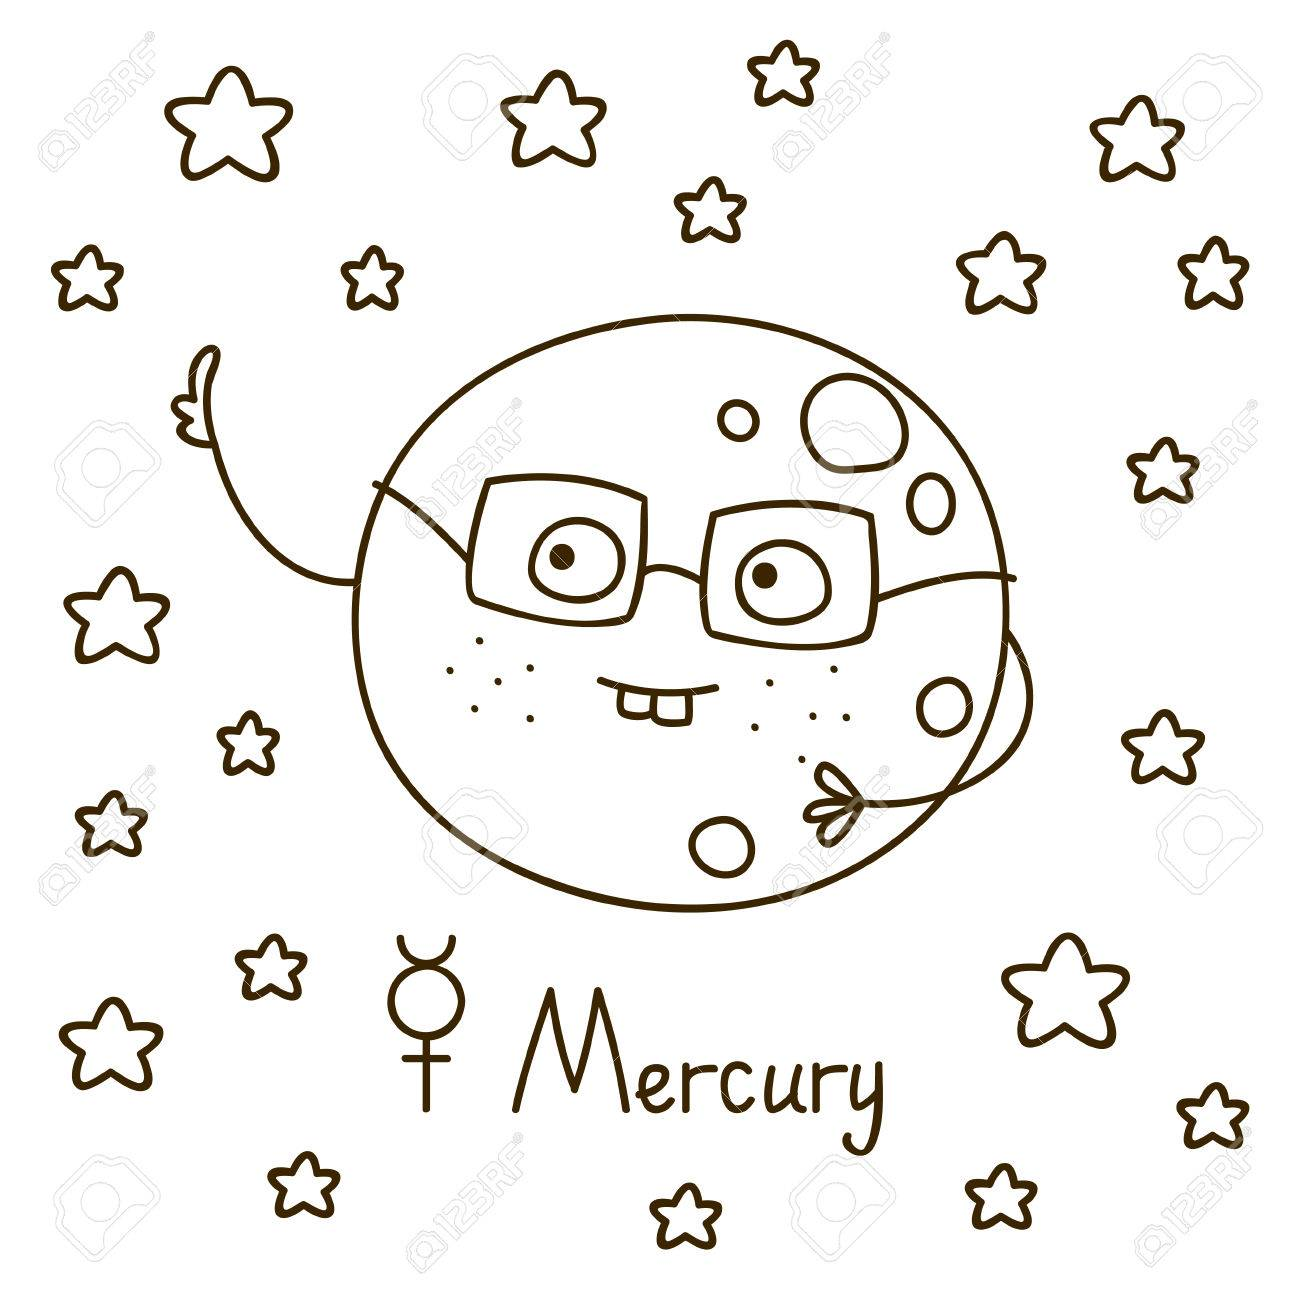 Cute Cartoon Mercury For Coloring Book Royalty Free Cliparts